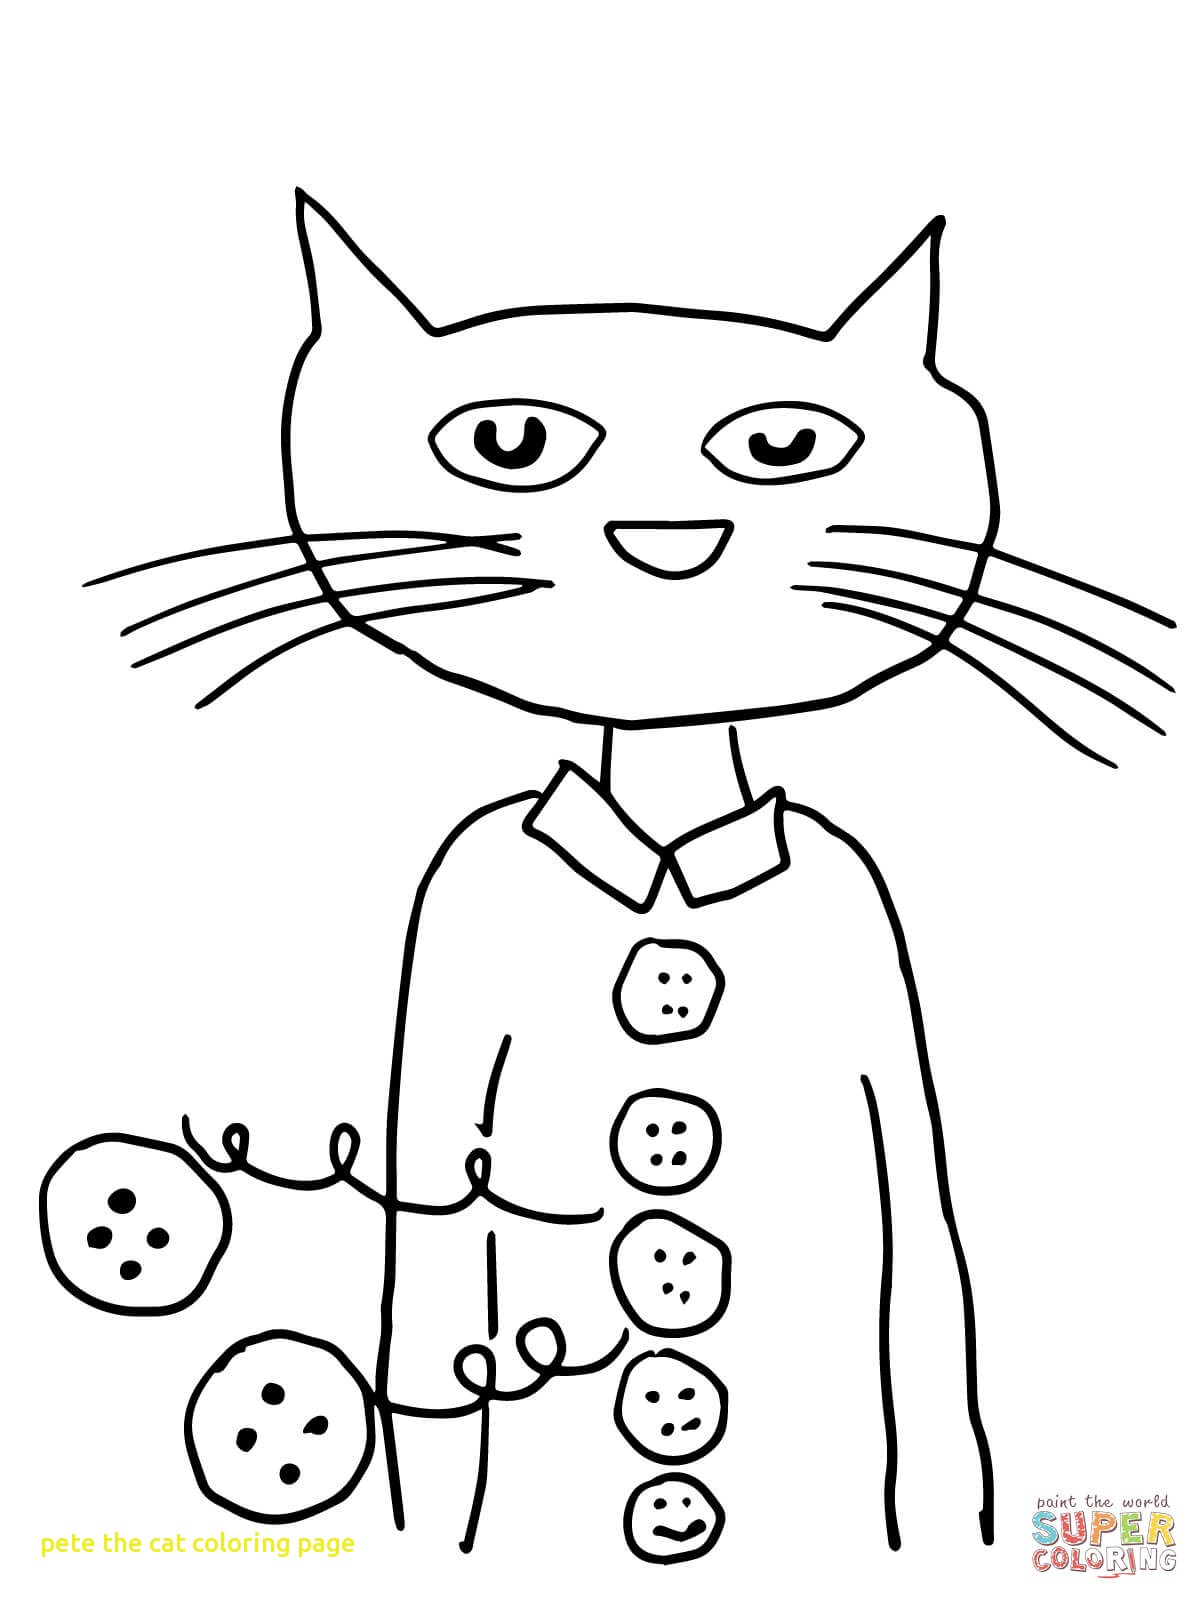 1200x1600 Pete The Cat Coloring Page With Pete The Cat Groovy Buttons